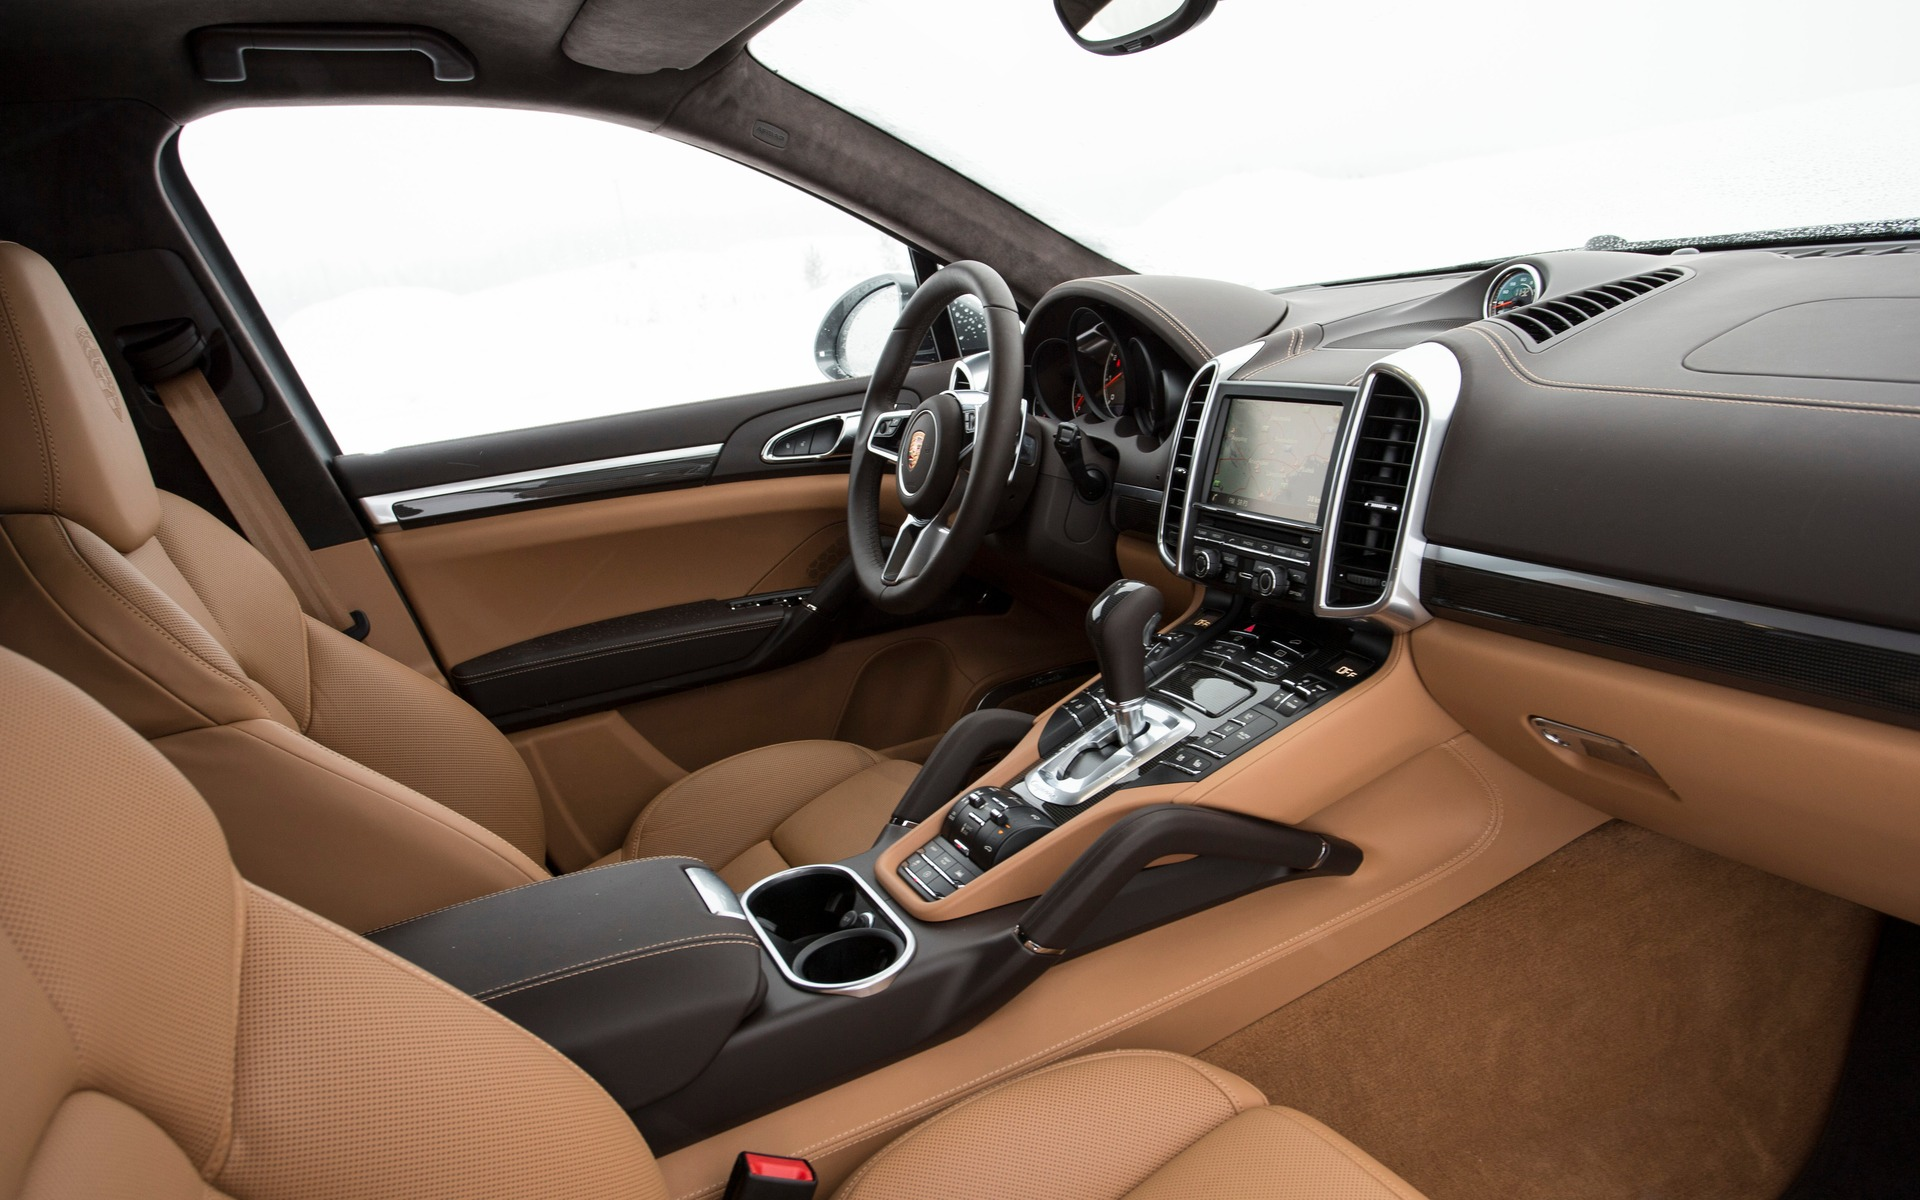 2016 Porsche Cayenne Gts And Turbo S Dynamic And